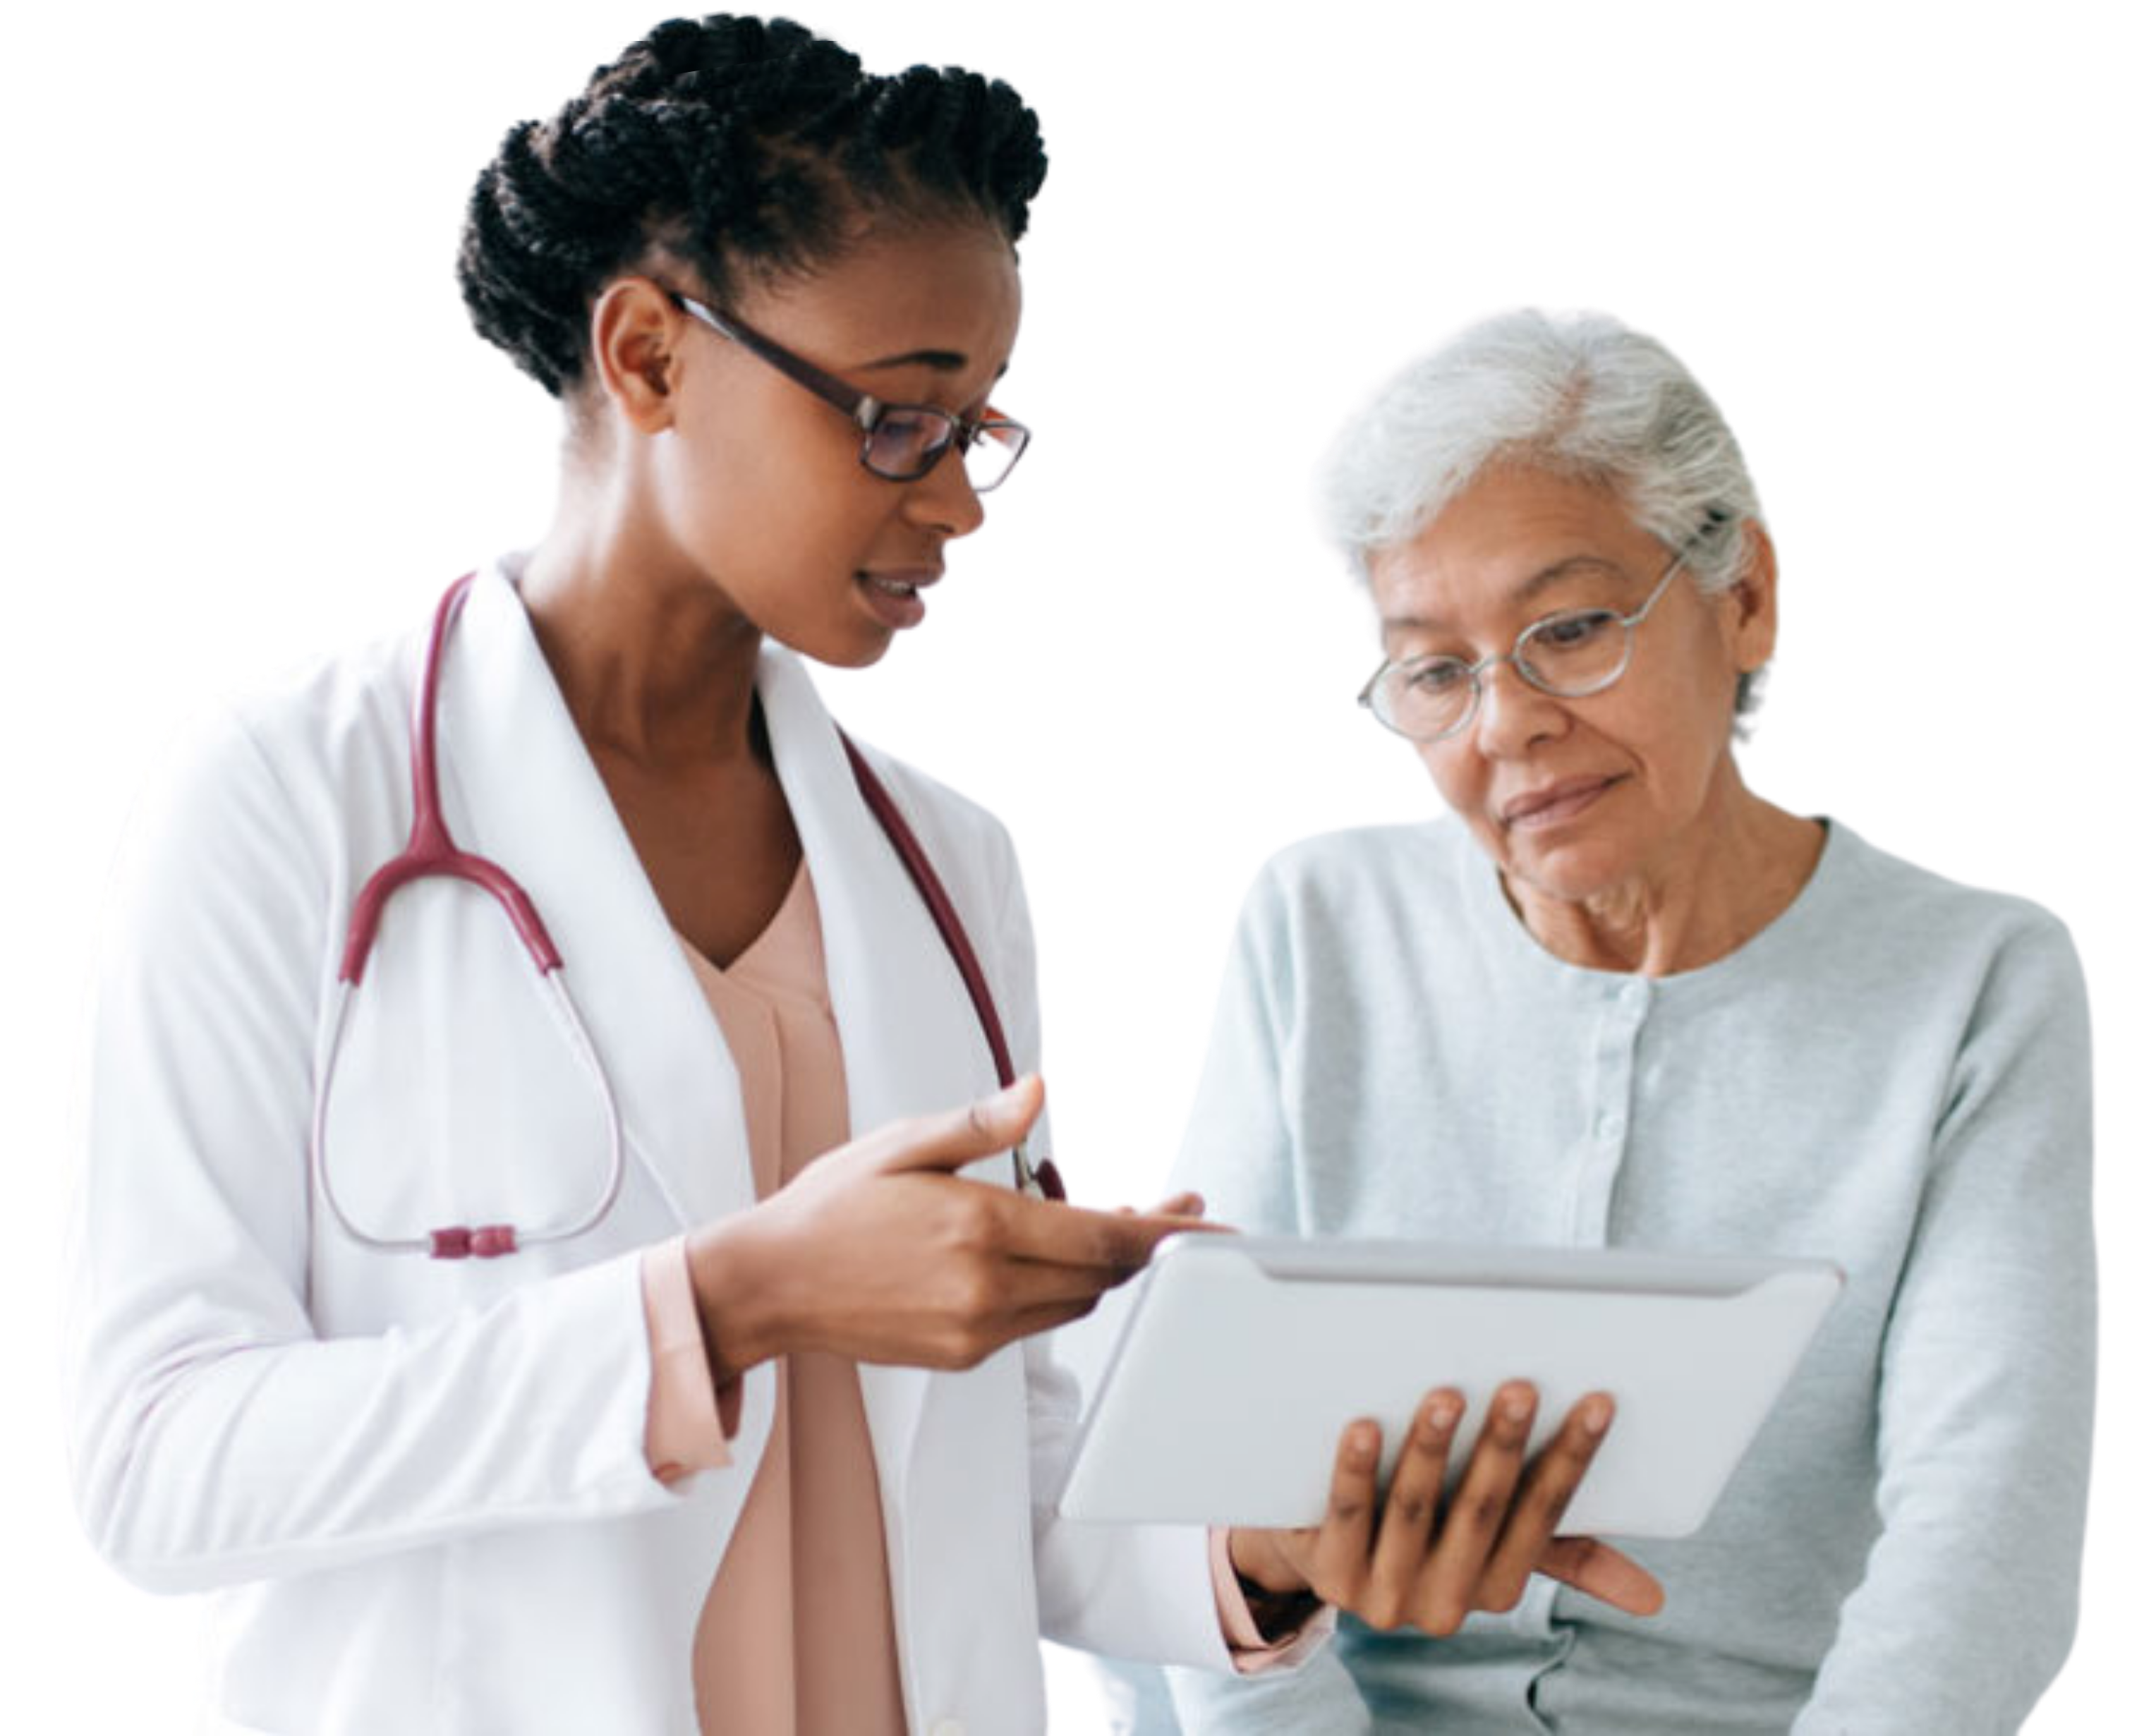 Doctor explaining information to a patient